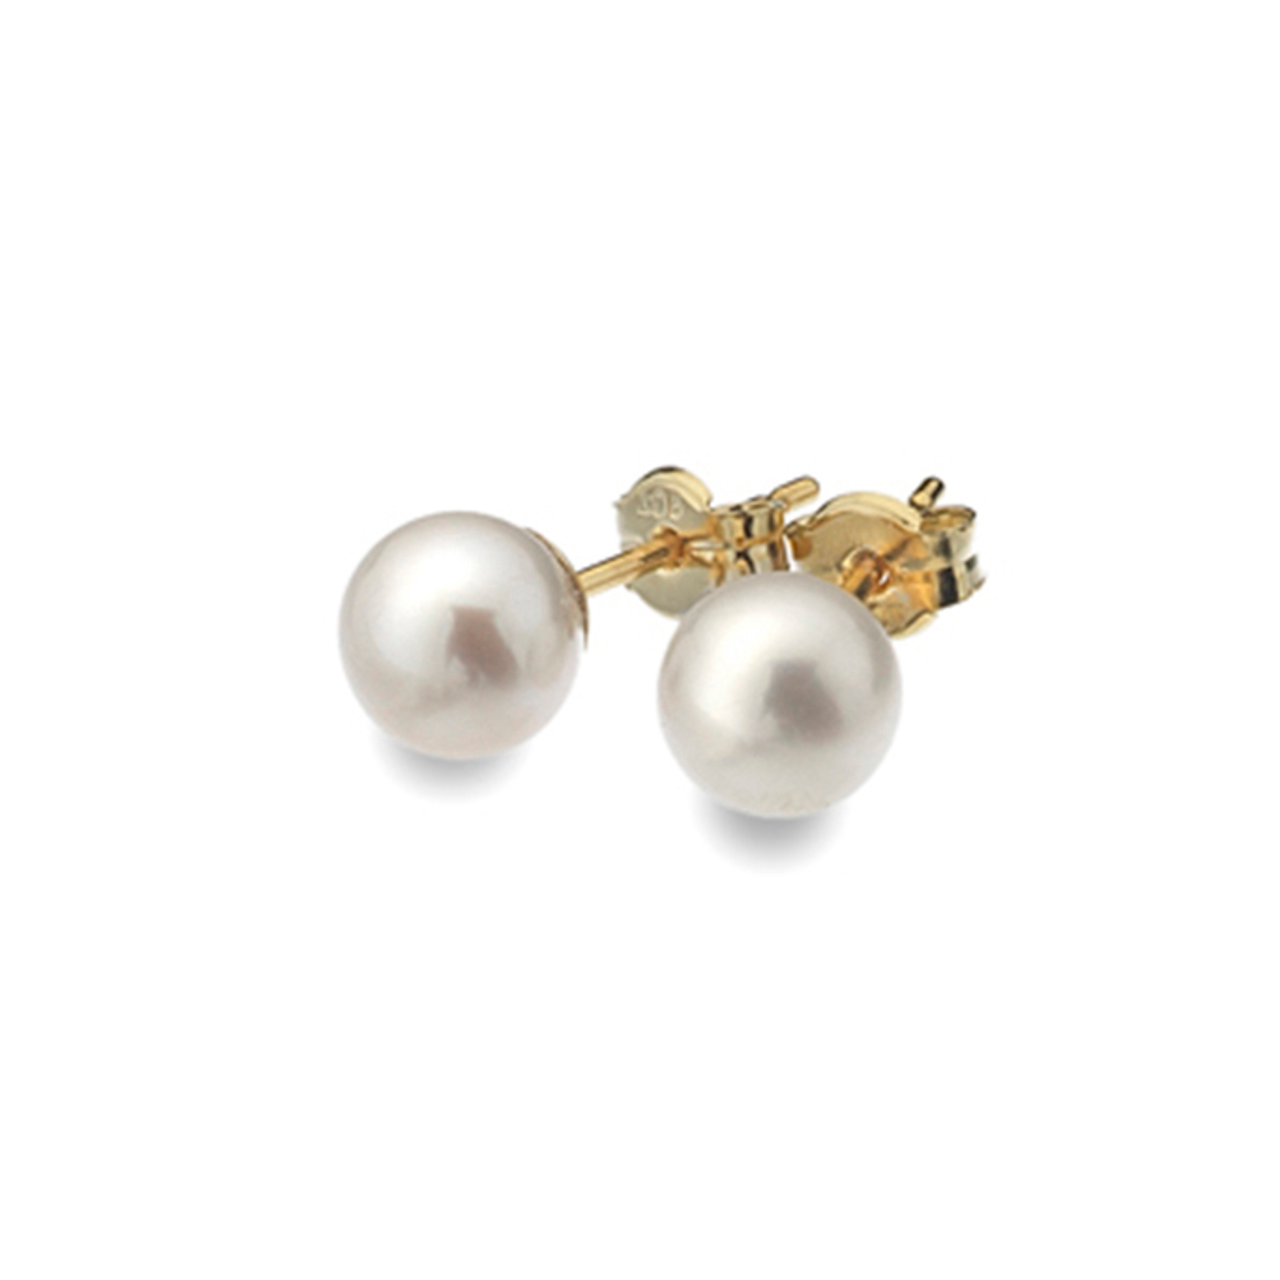 af60c04ef 9ct Yellow Gold 6mm Freshwater Pearl Stud Earrings - Hester Clarke